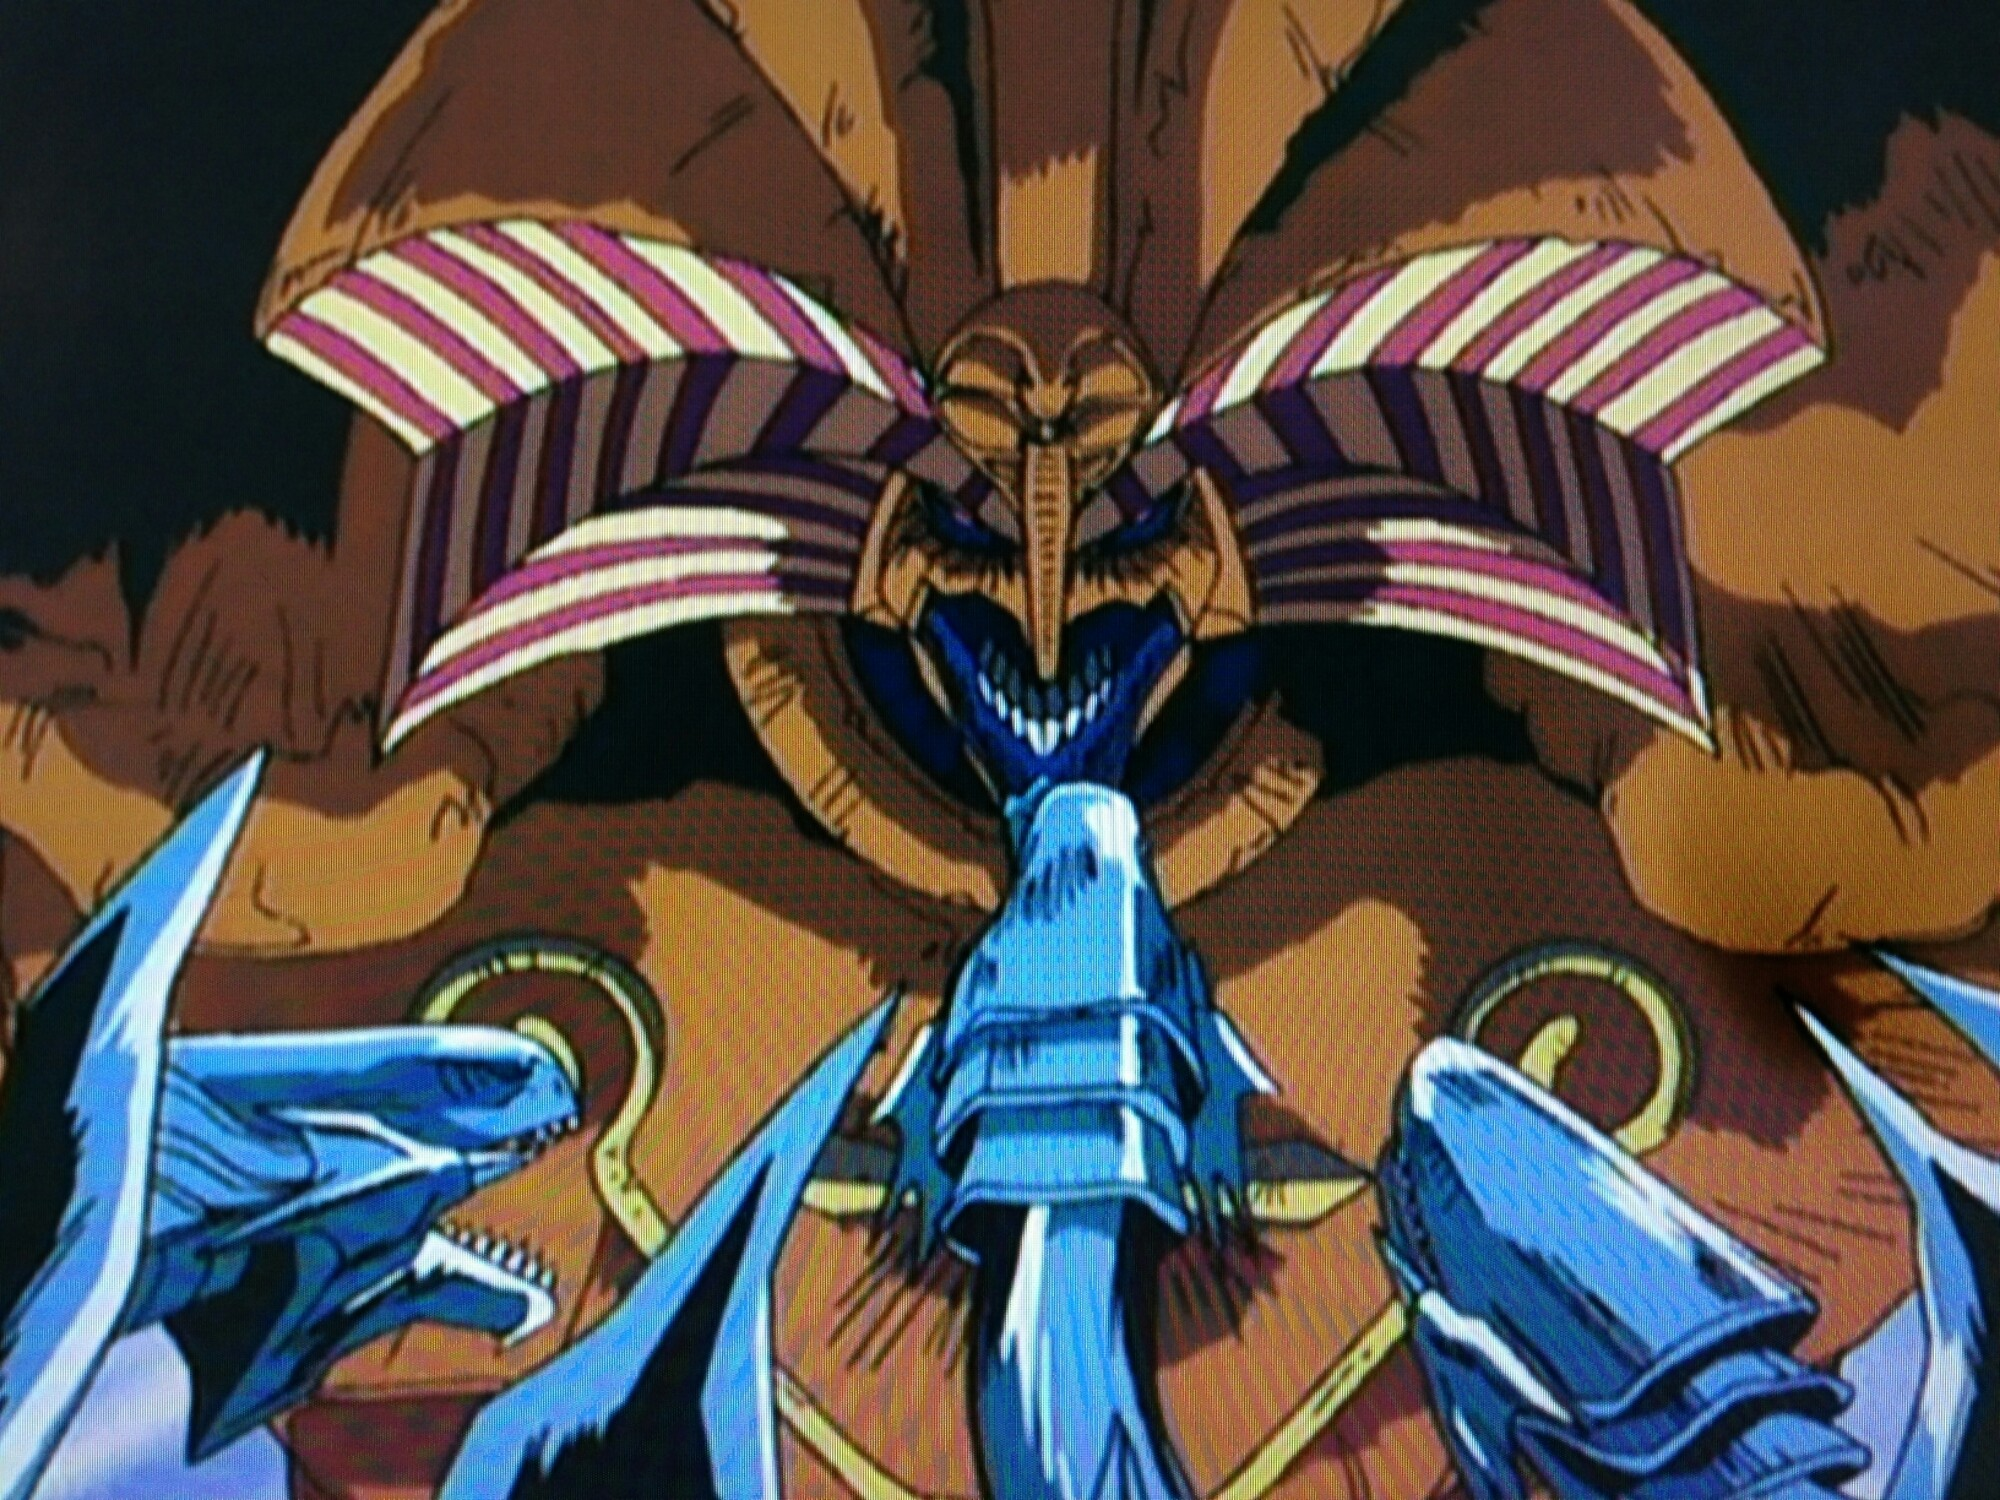 Res: 2000x1500, View Fullsize Yu-Gi-Oh! Duel Monsters Image